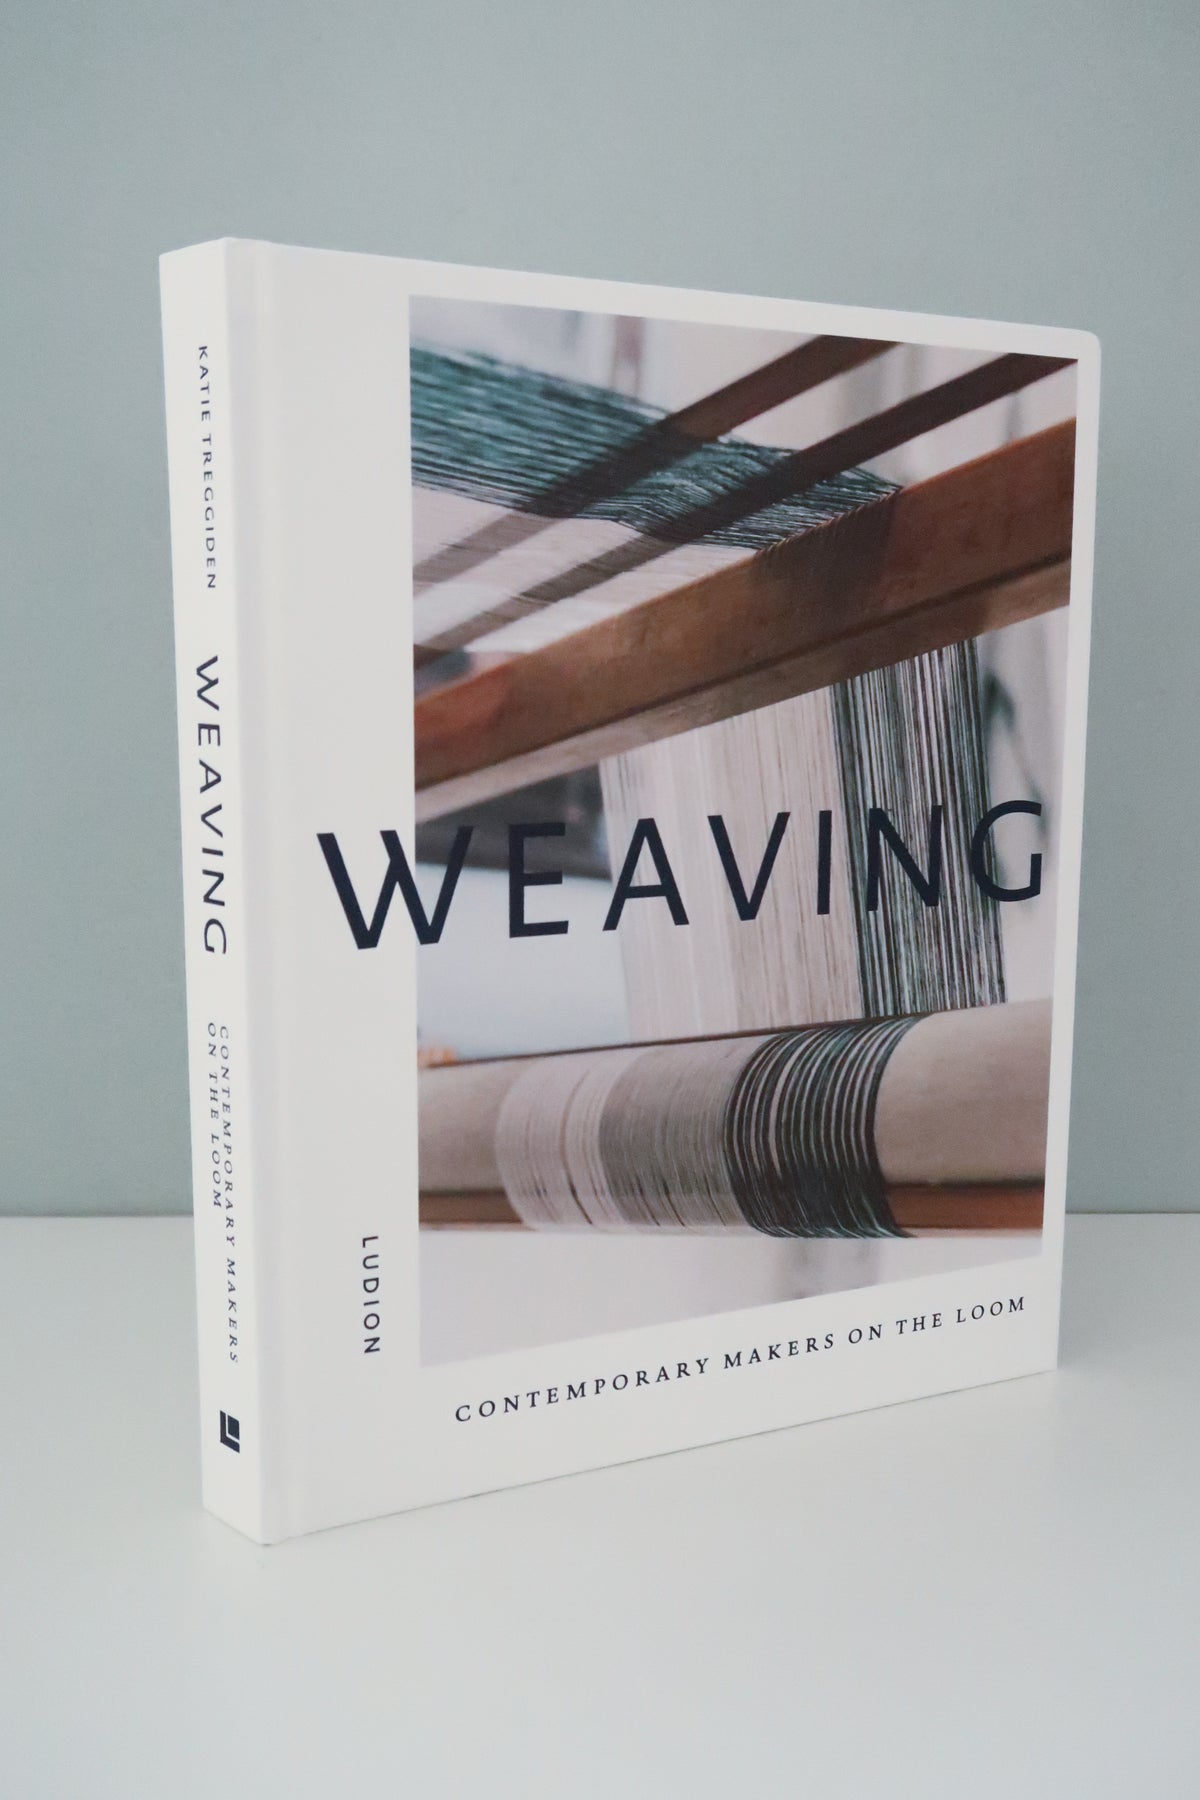 Image of Book | Weaving - contemporary makers on the loom